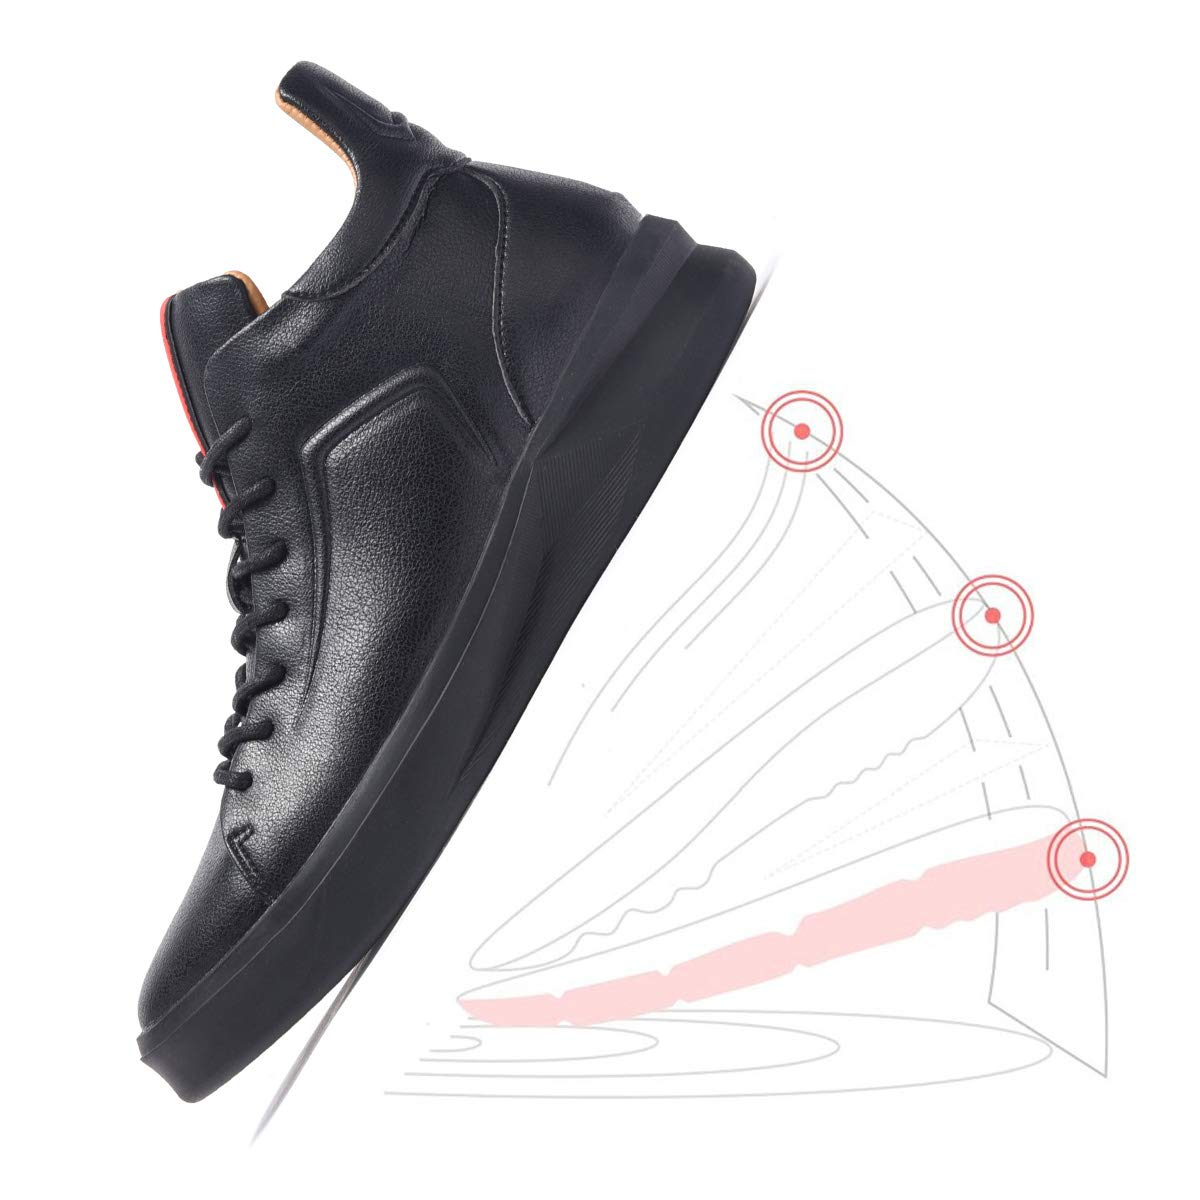 ARTISURE Men's Classic Black Genuine Leather High-Top Casual Sneakers Fashion Ankle Boots 10 M US SKS-1019HEI100 by ARTISURE (Image #3)